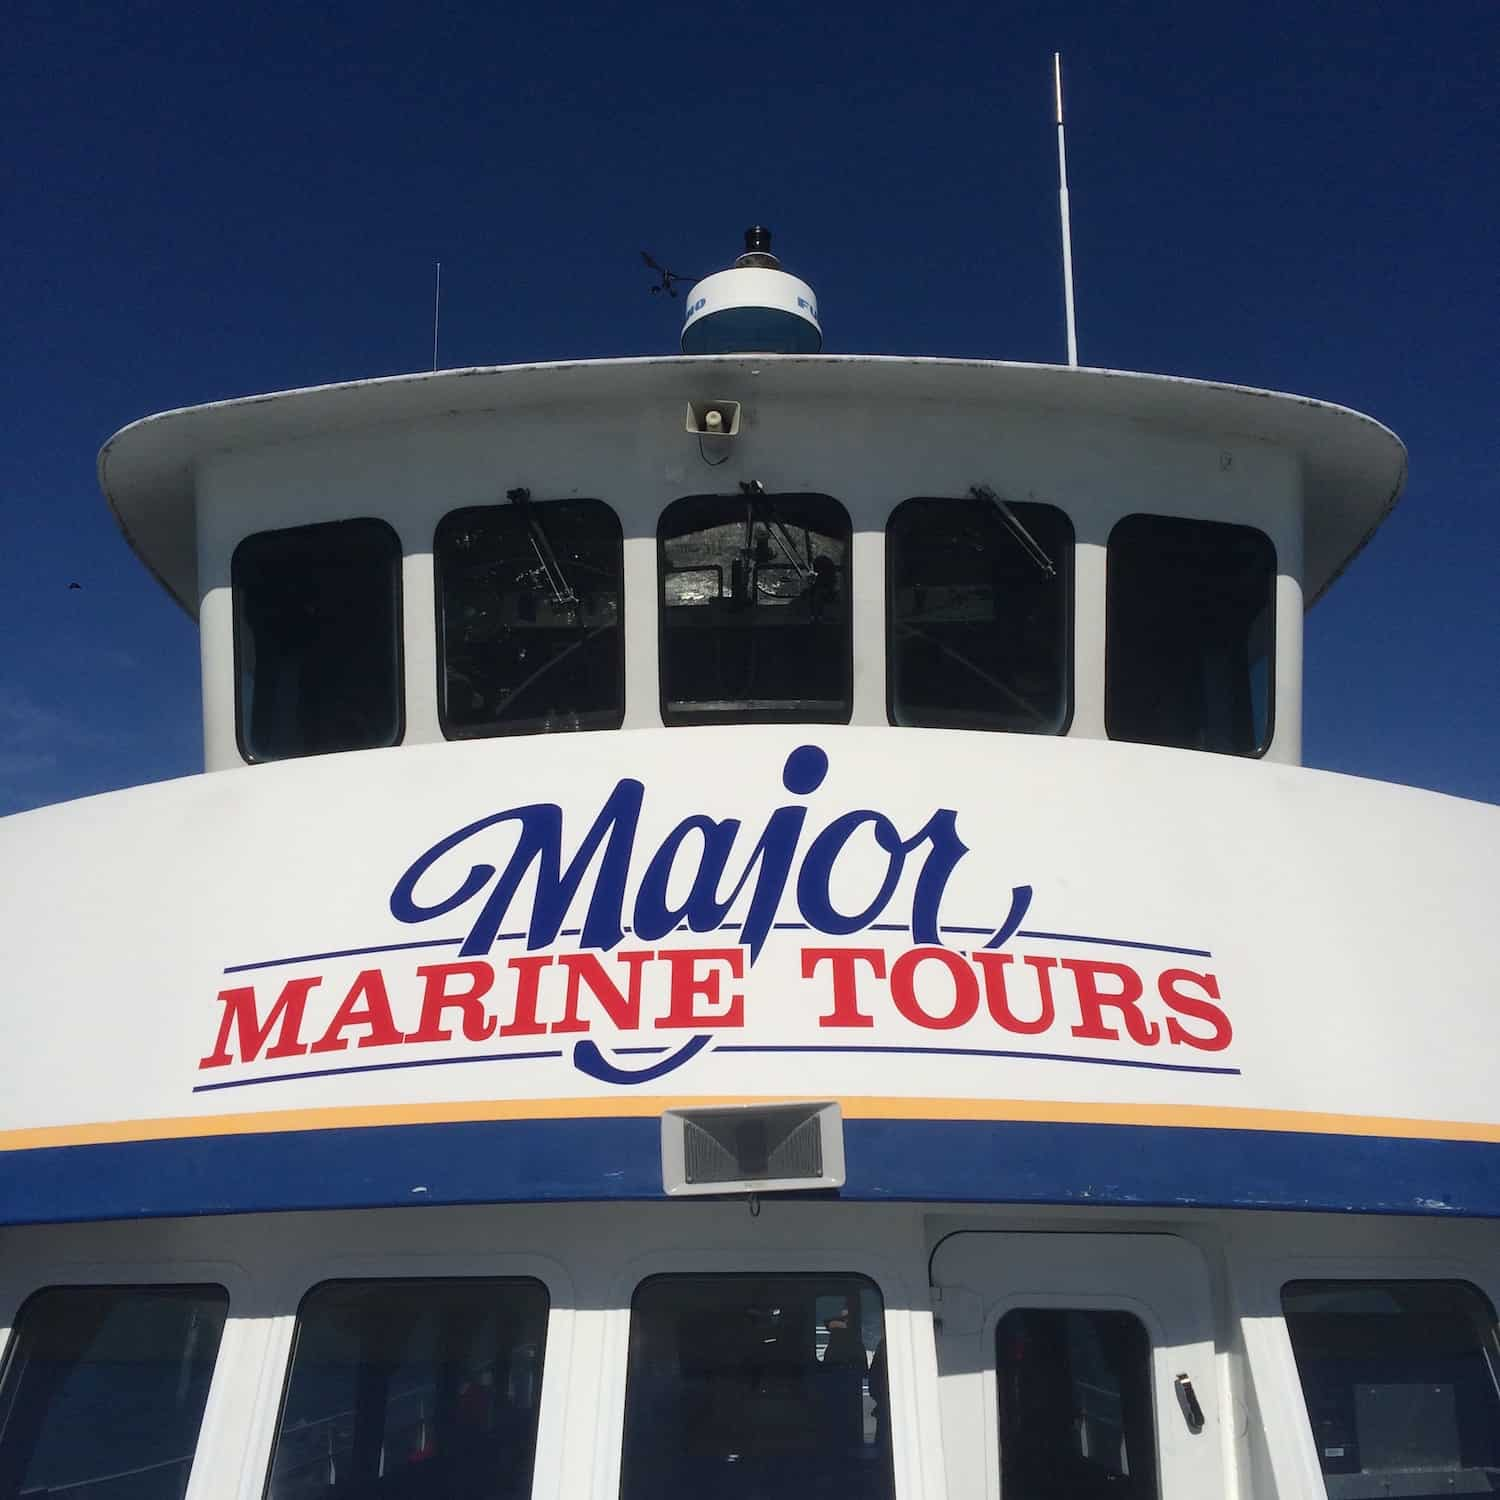 Major Marine Tours - Front of Boat